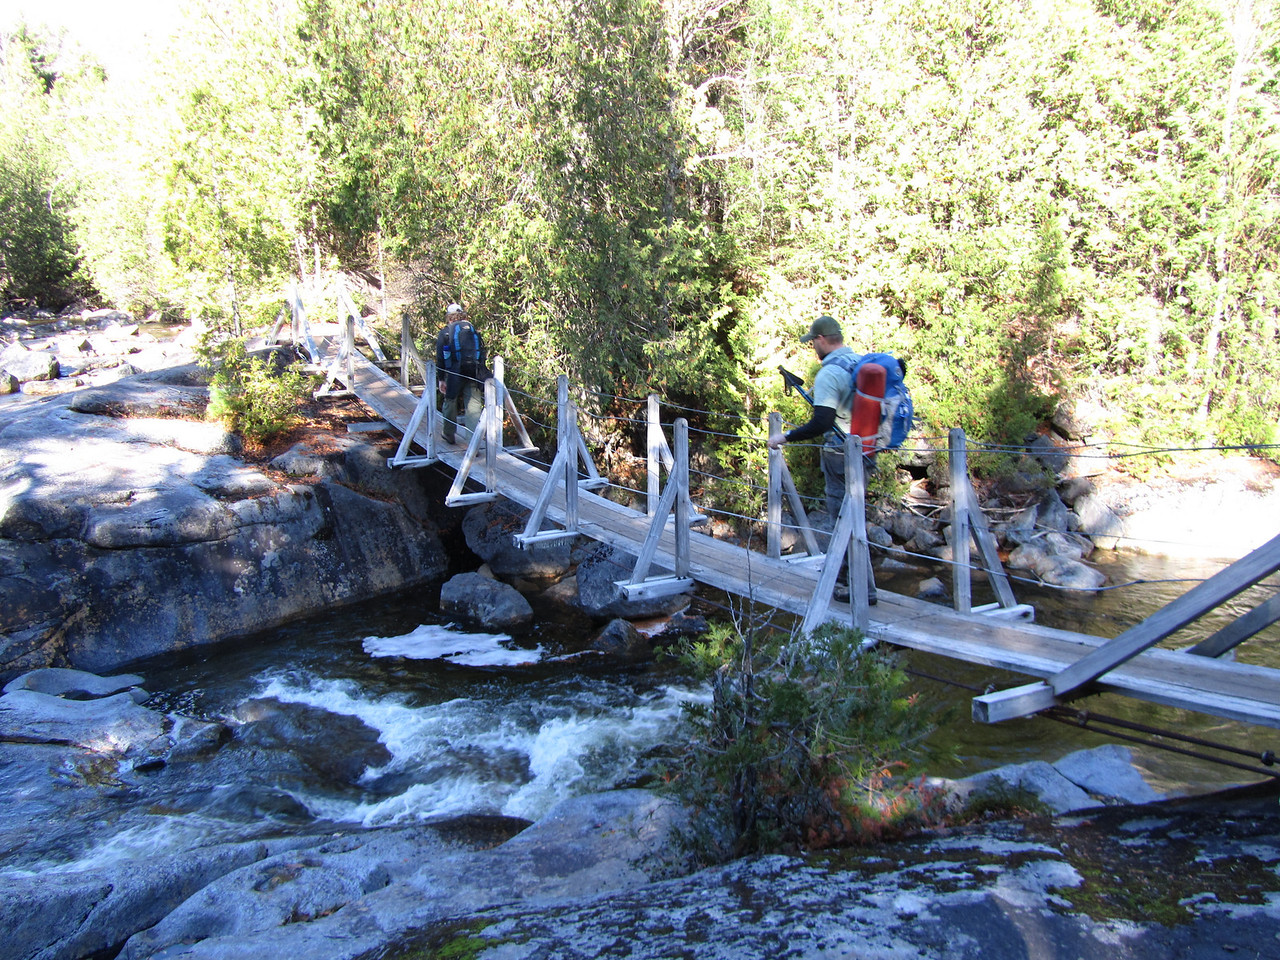 The first bridge of the trip. A nice looking one traversing a beautiful trout stream.